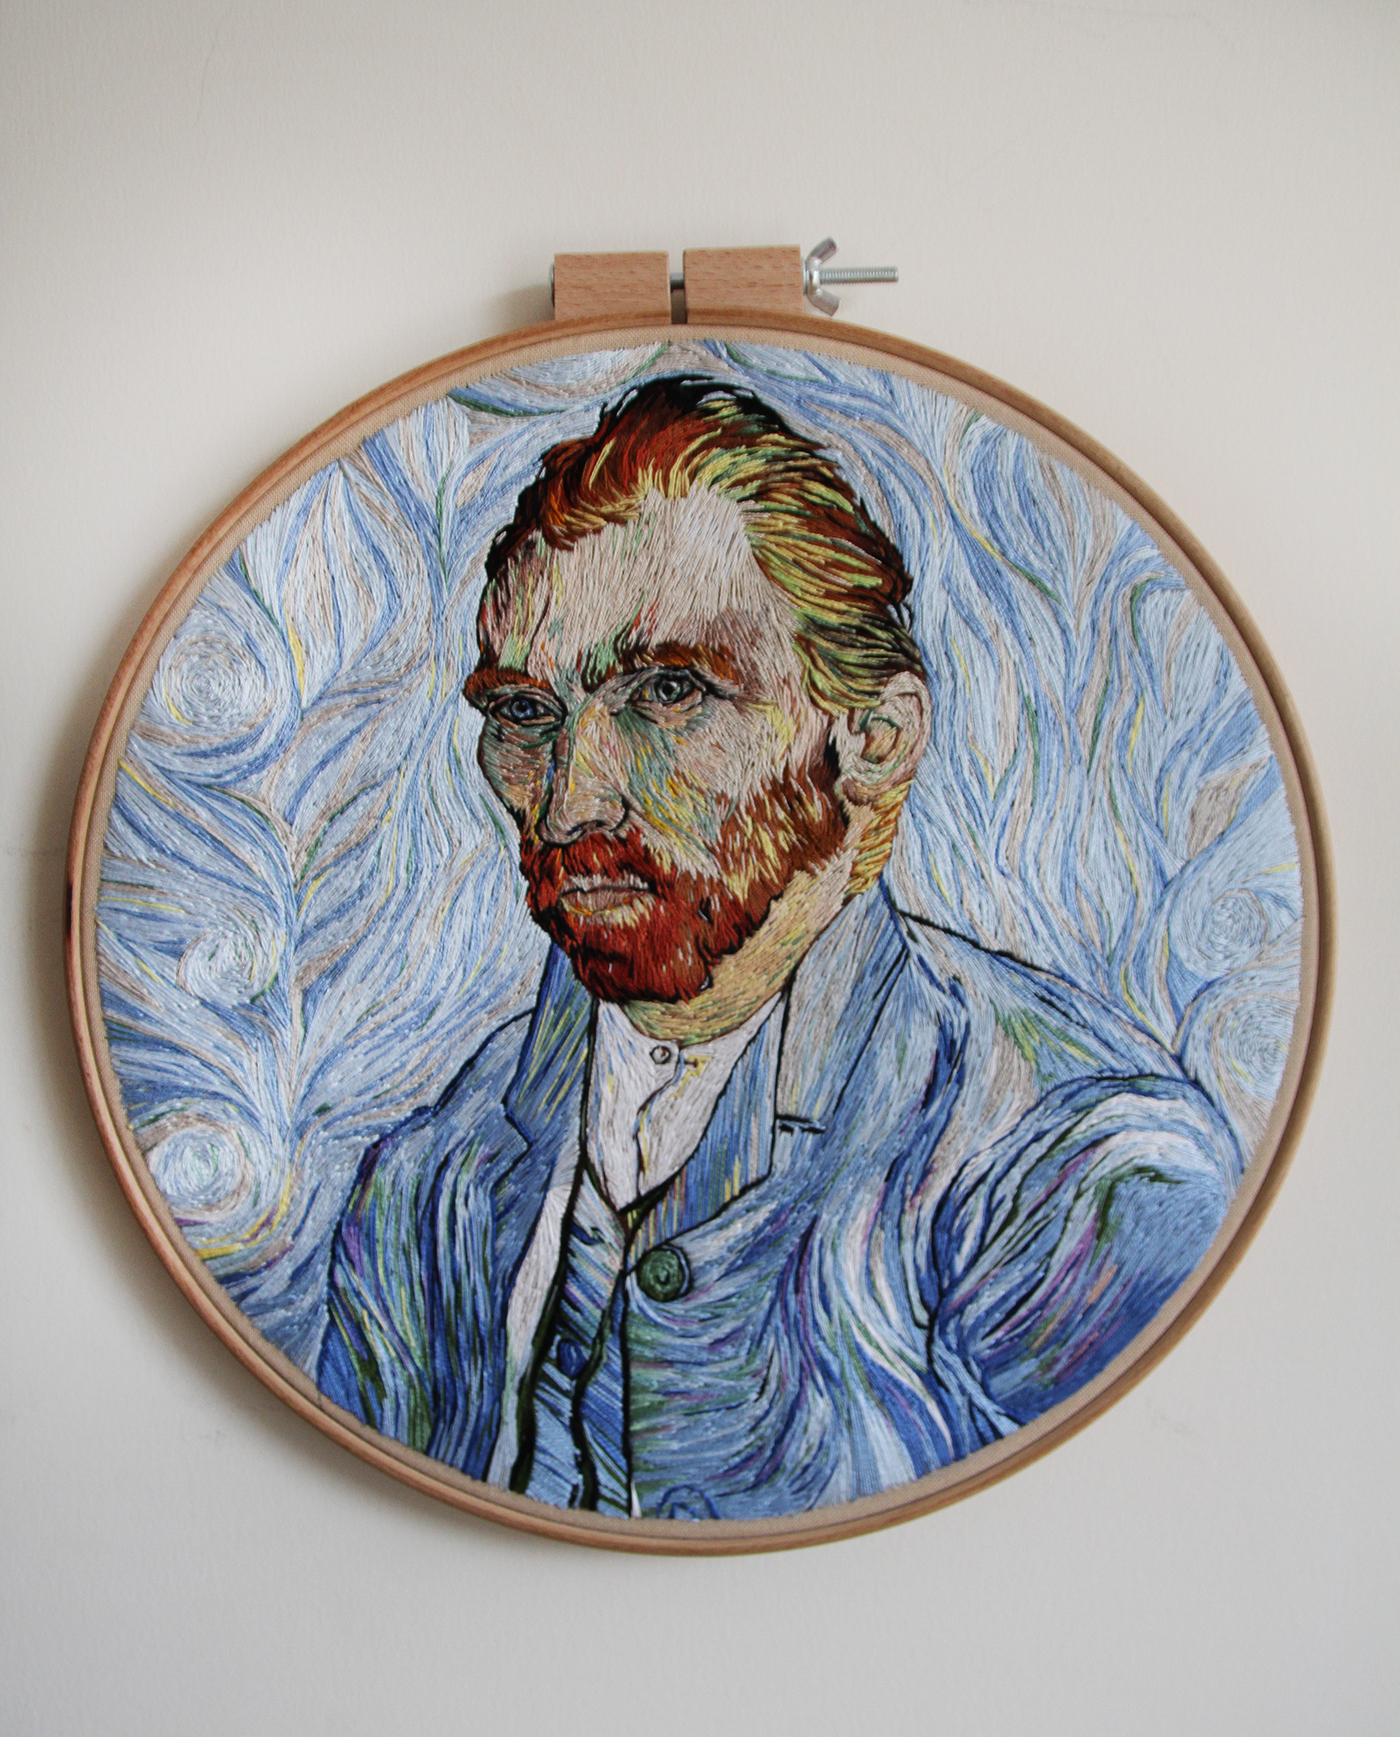 An Embroidered Replica Of Van Gogh's Self Portrait